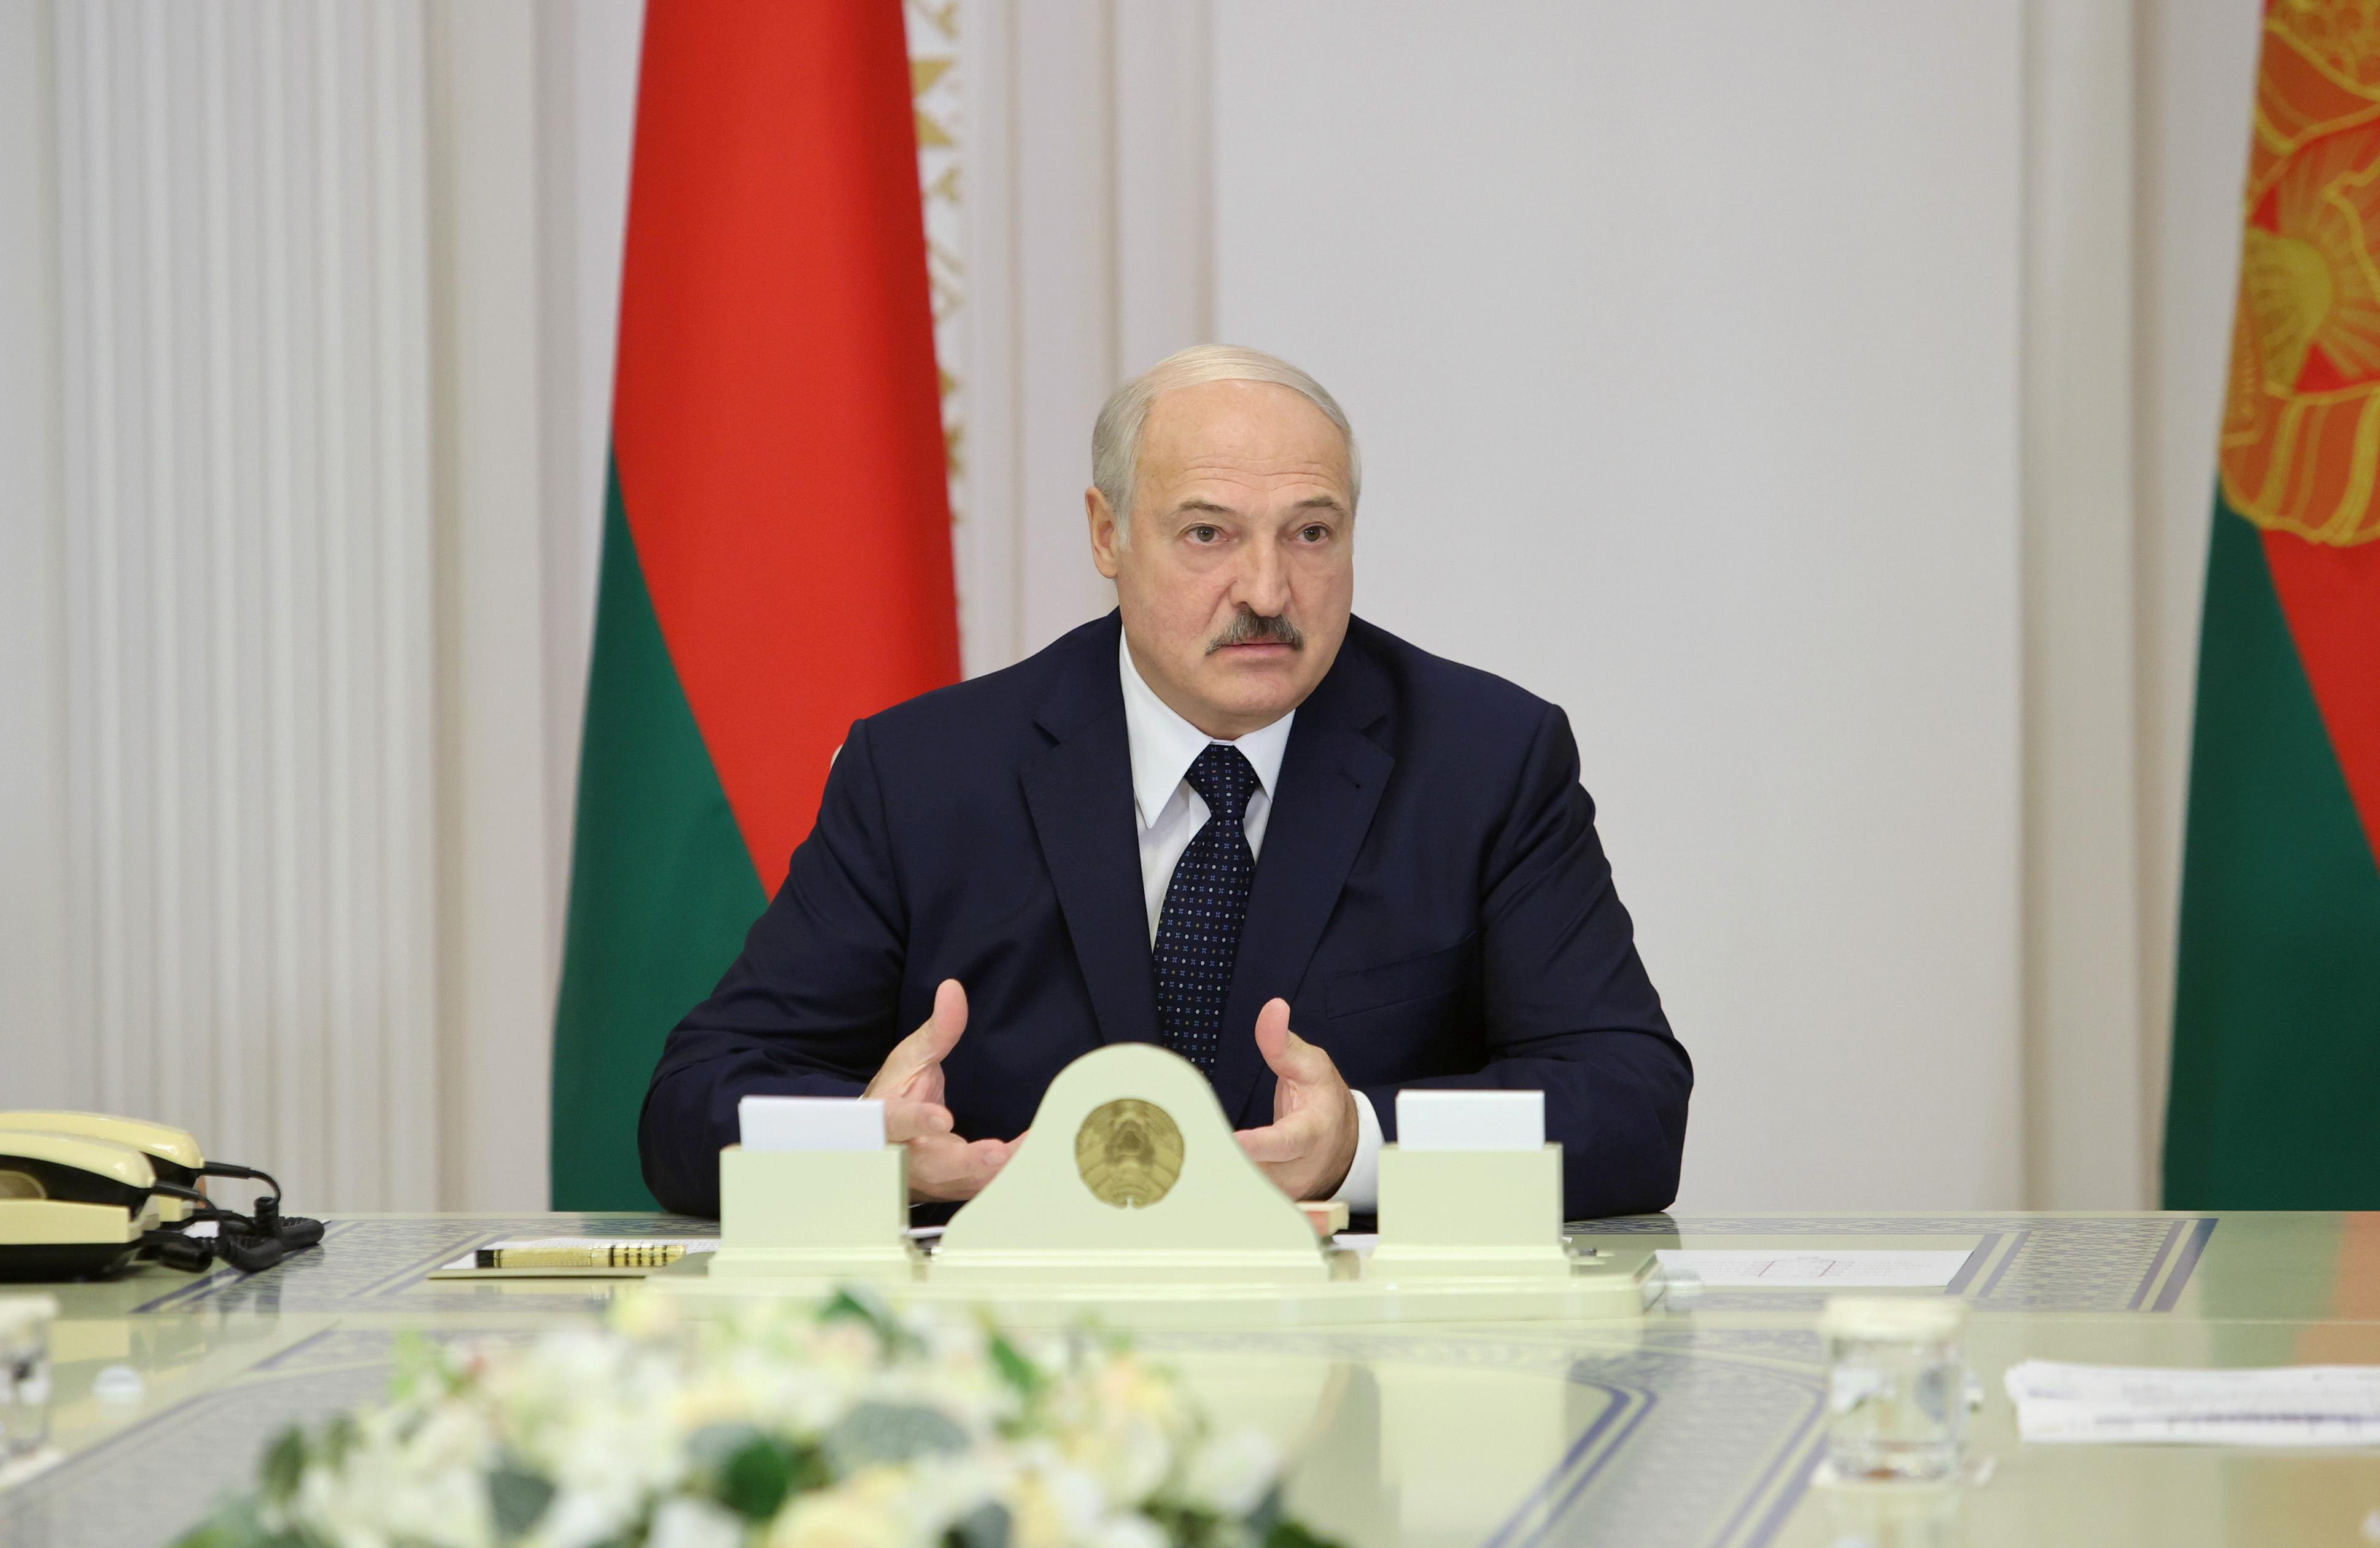 Baltic states impose sanctions on Lukashenko and other Belarus officials